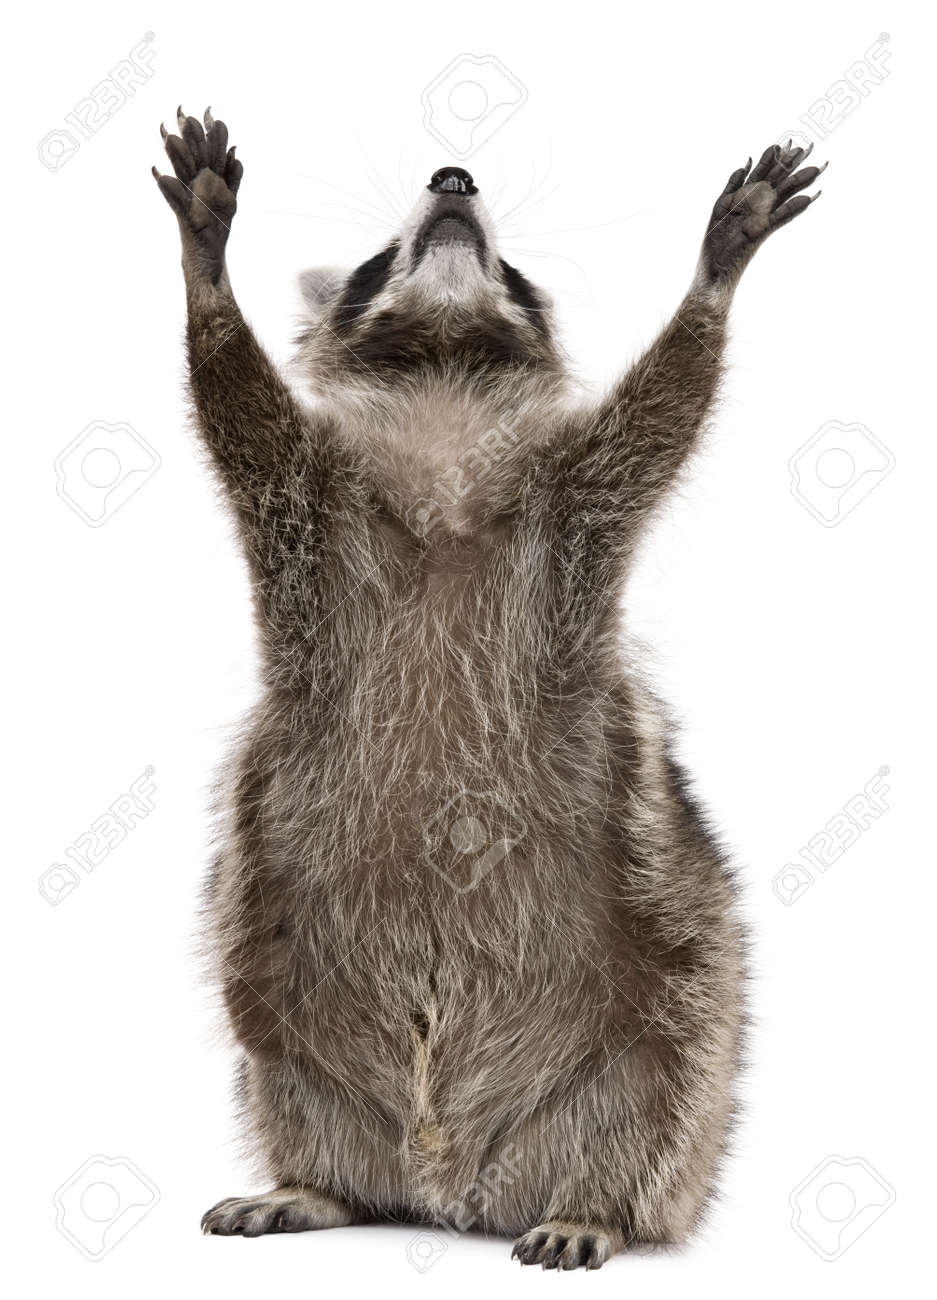 raccoon 2 years old reaching up in front of white background